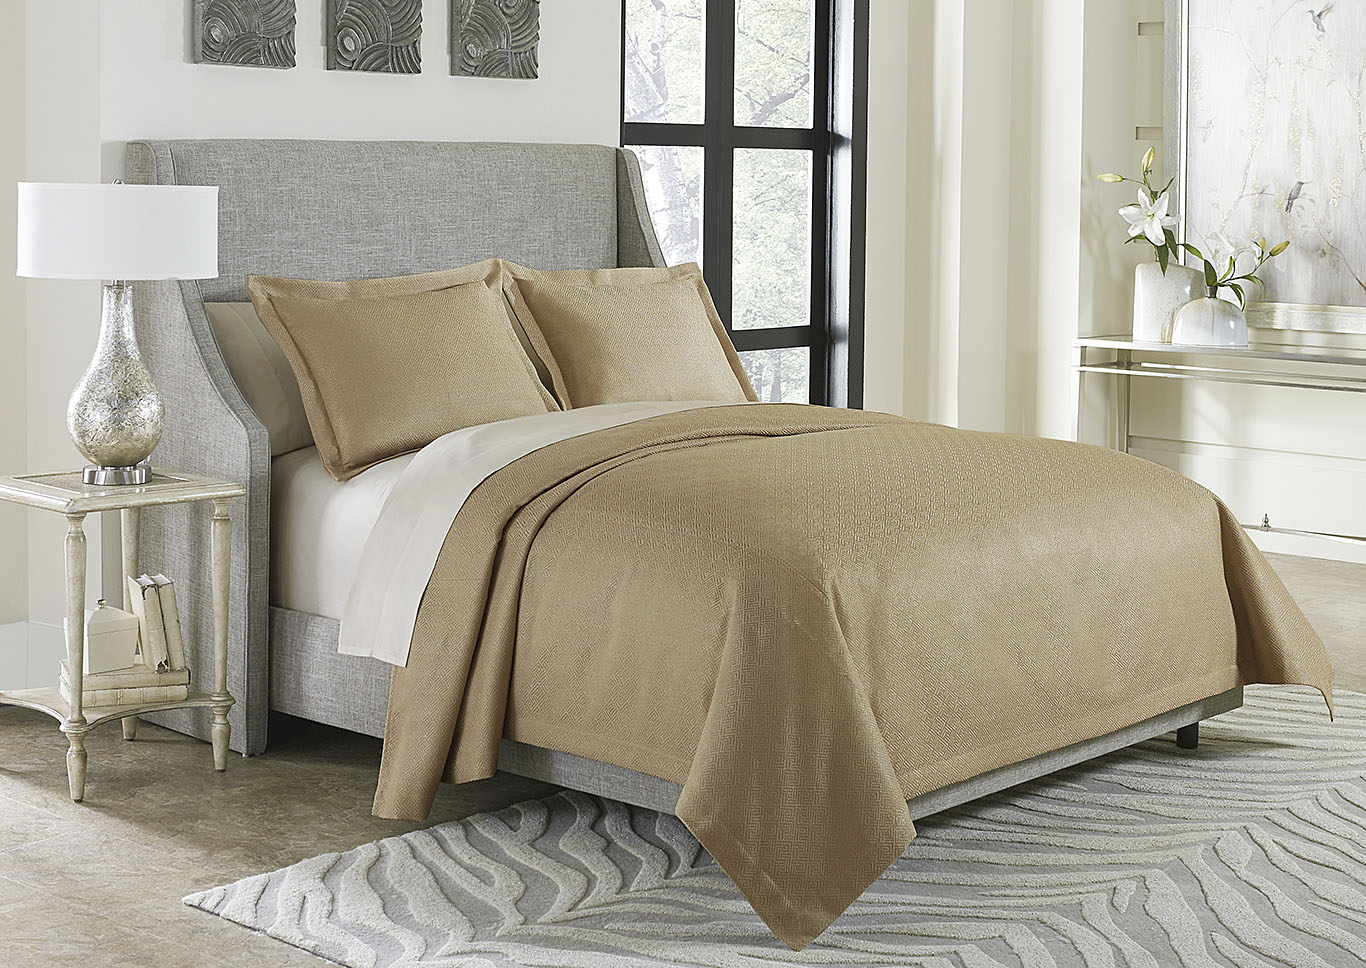 Alton 3 Piece Gold King Bed Throw Set,AICO